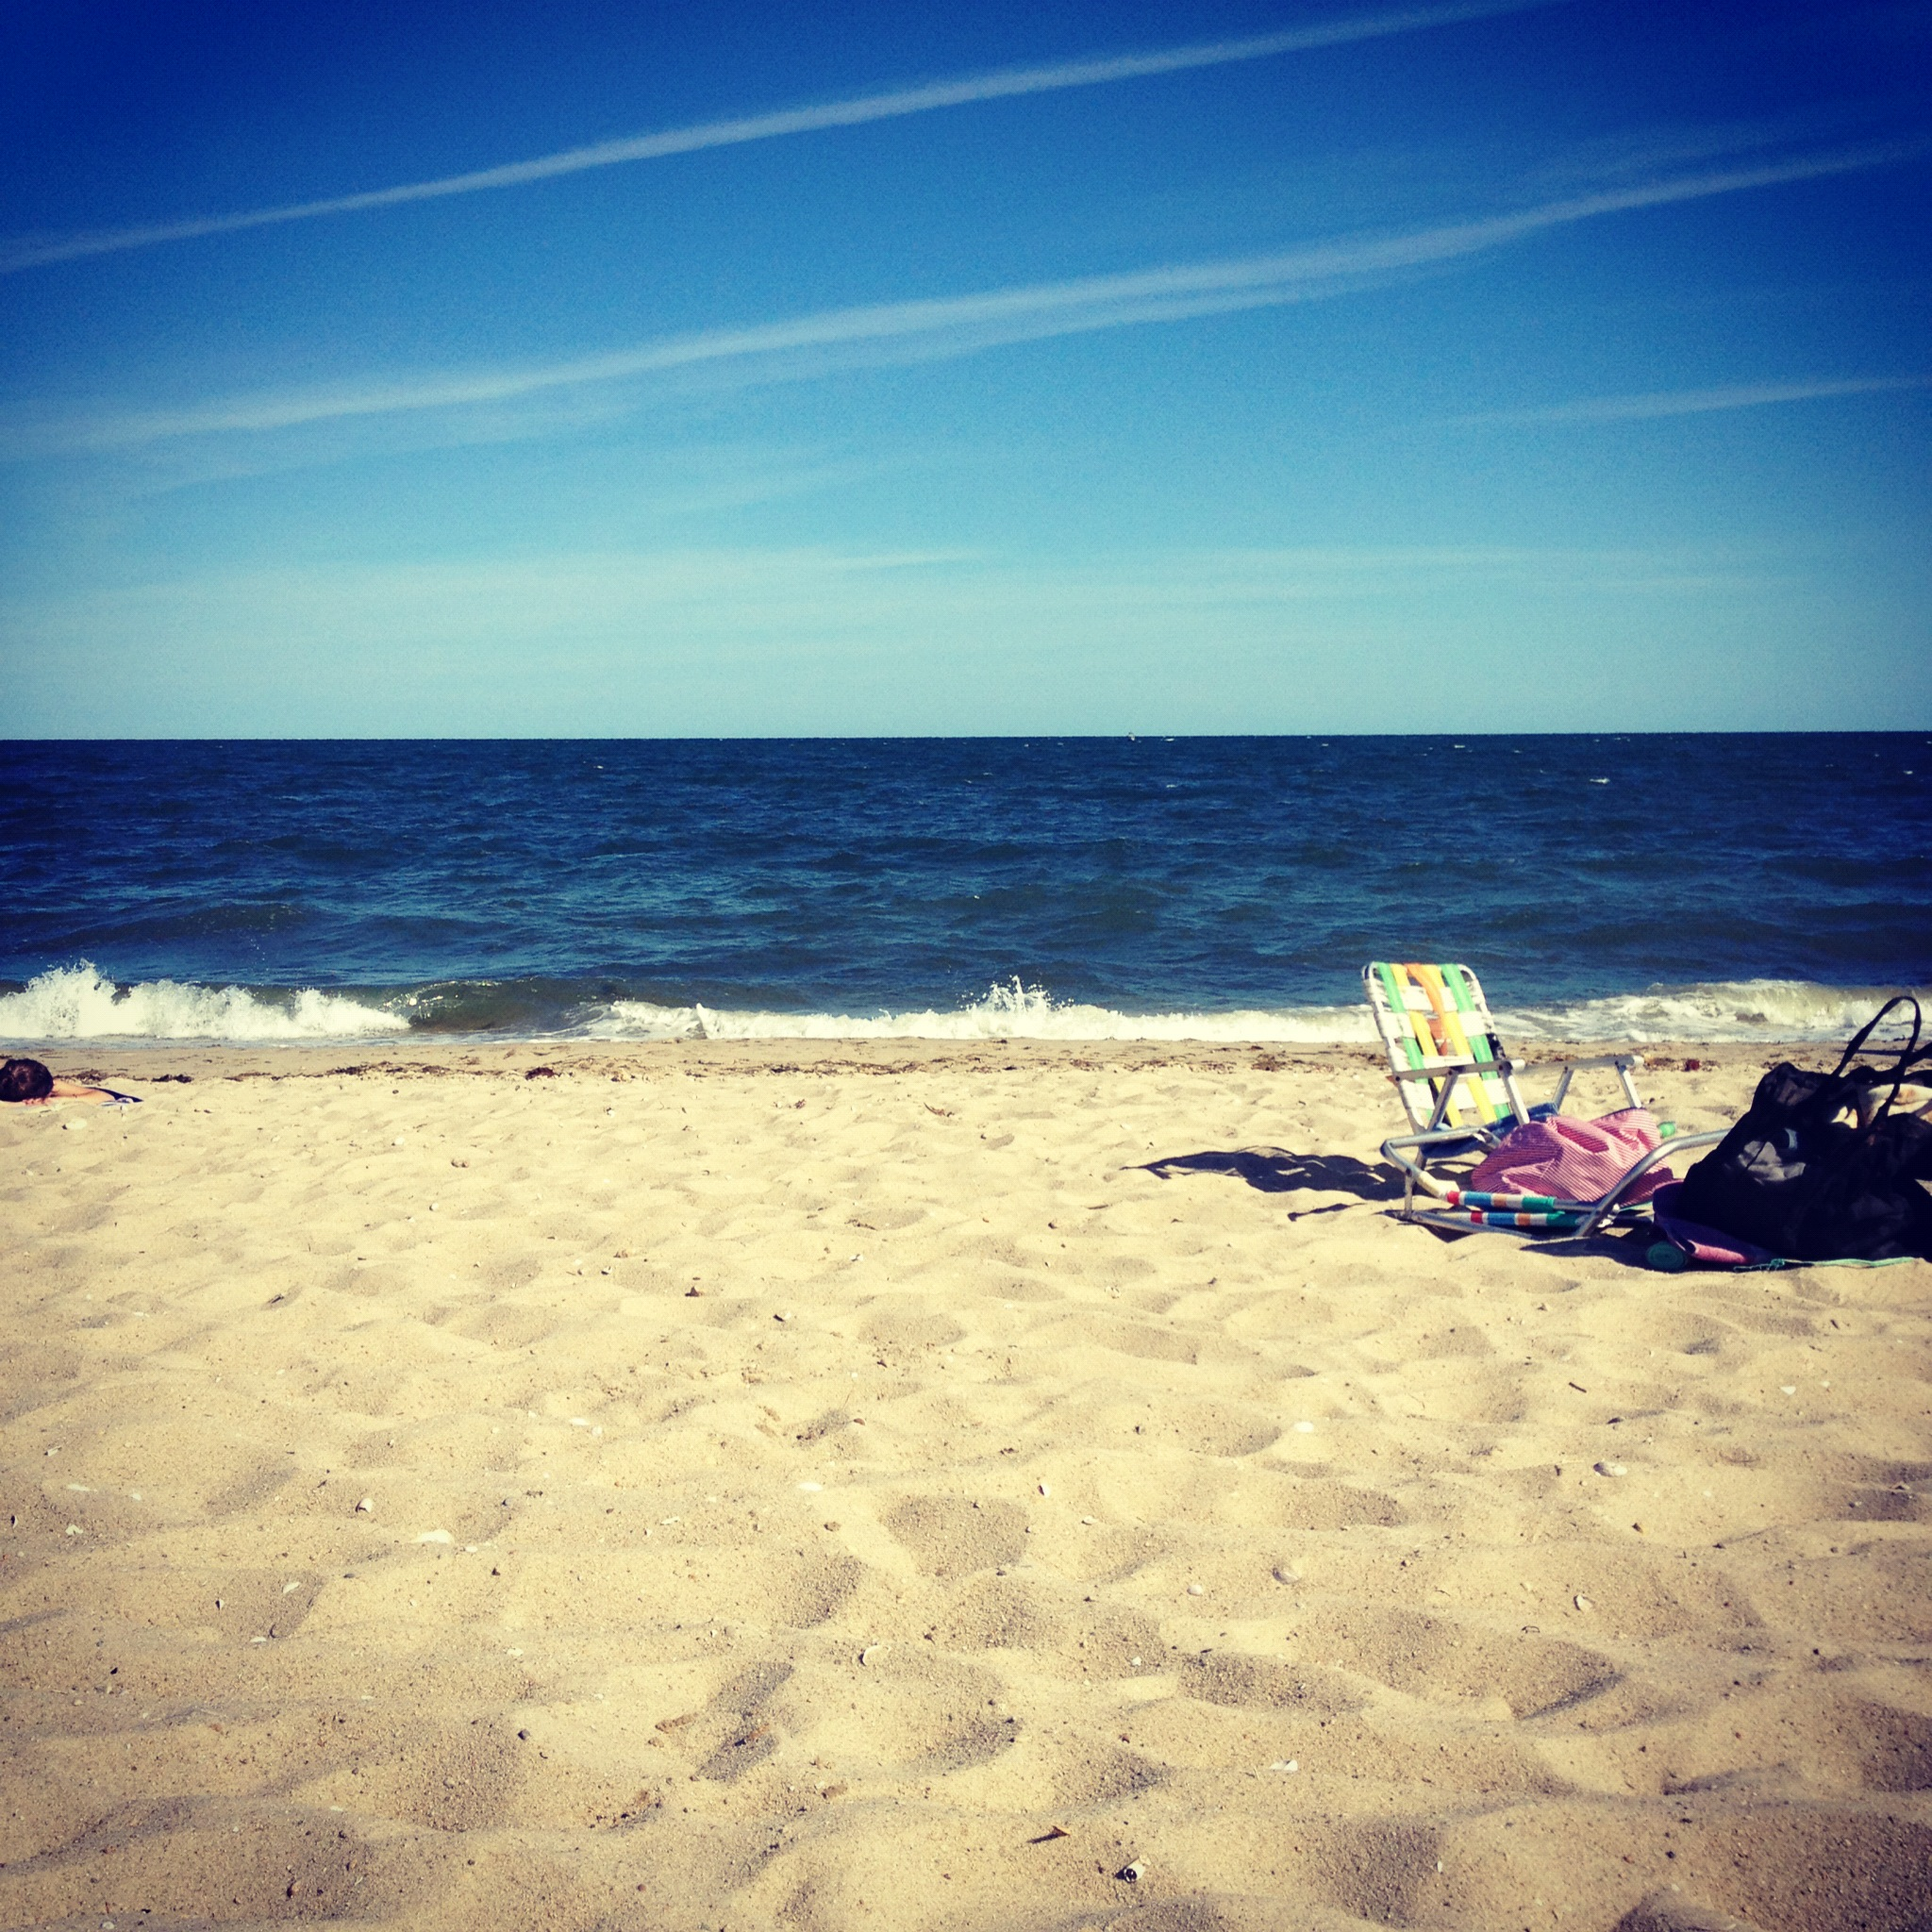 The Best Beaches In Falmouth And Mashpee Cape Cod